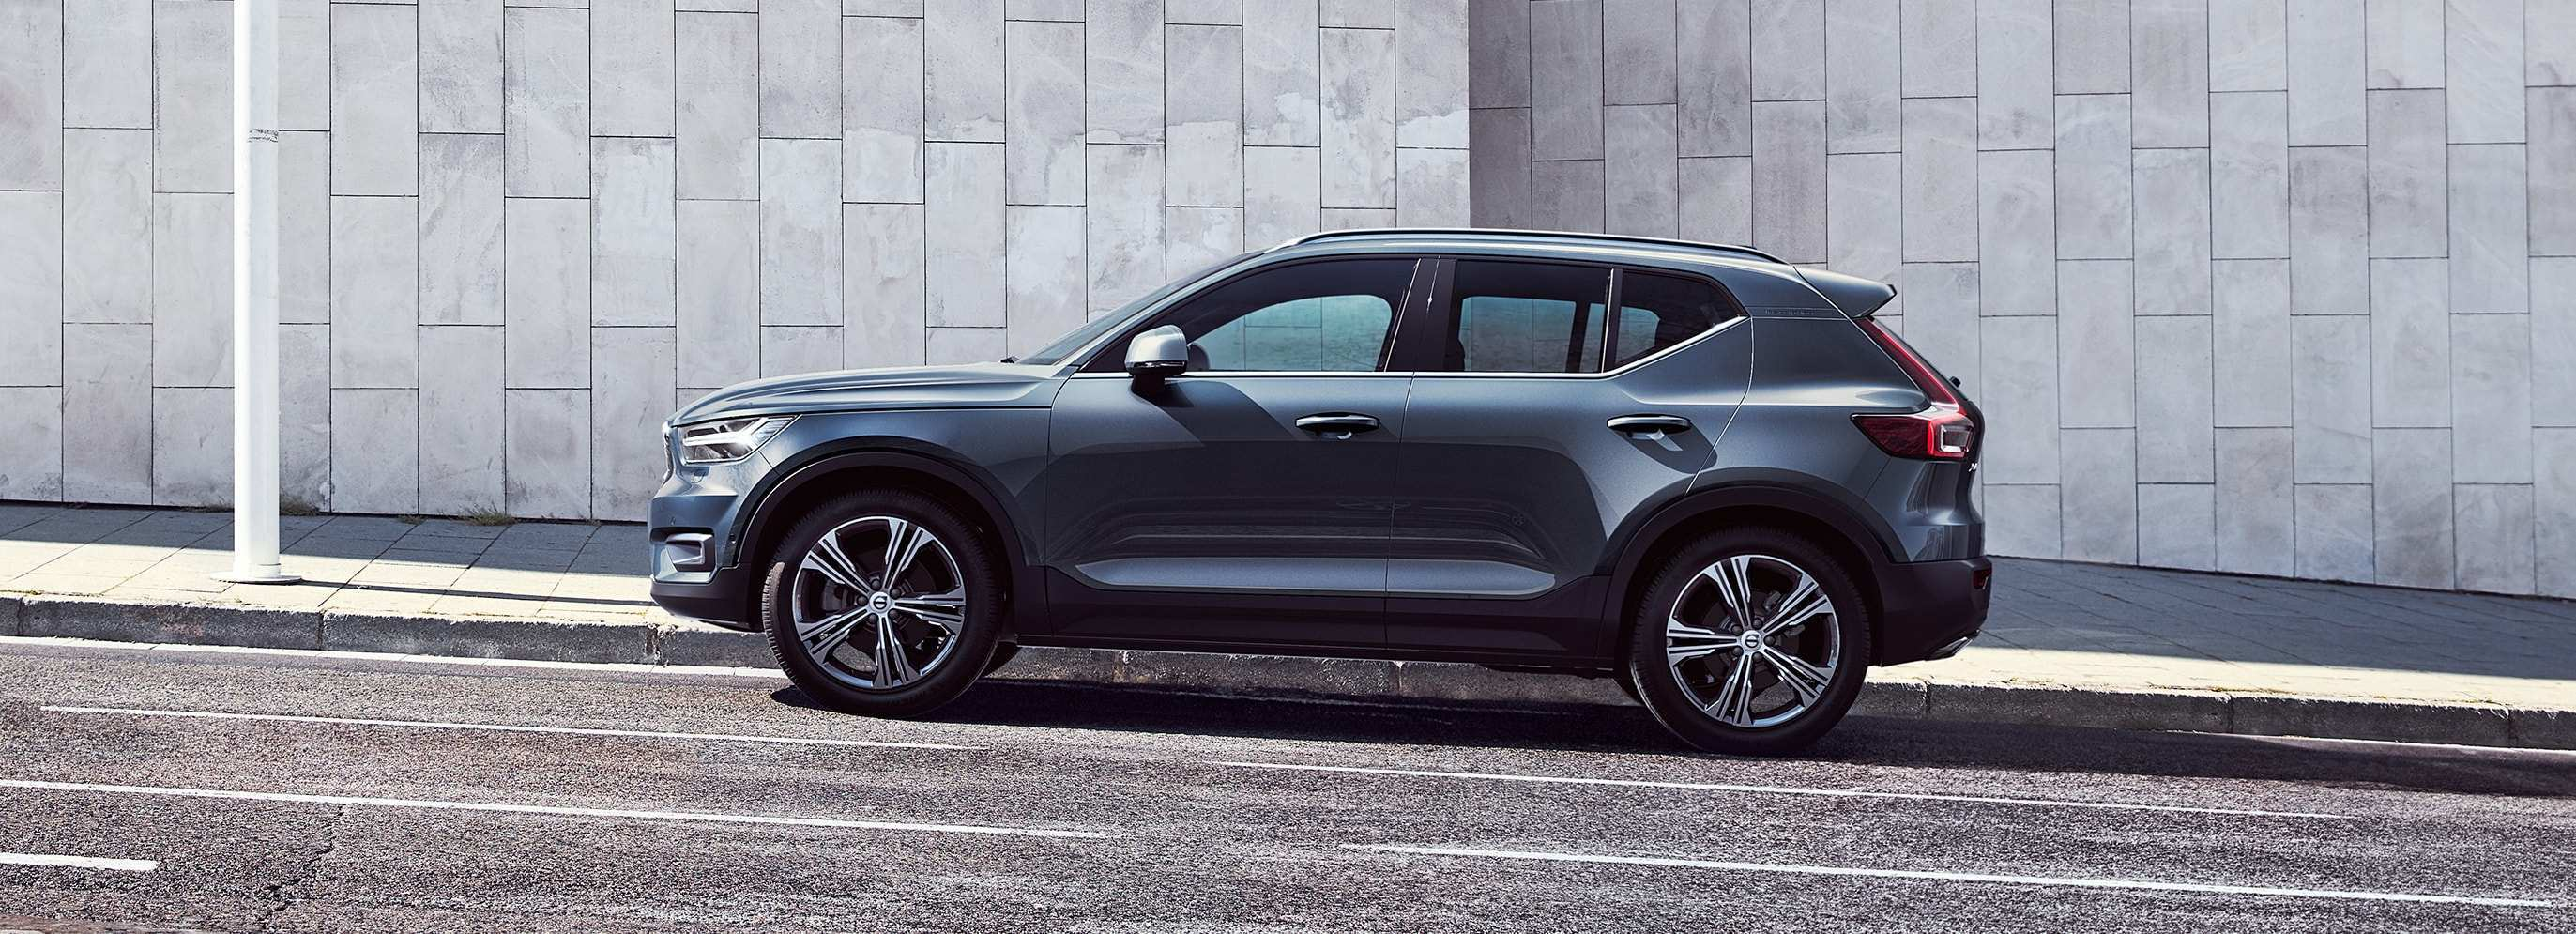 16 New Best Volvo Cars 2019 Models Specs Picture by Best Volvo Cars 2019 Models Specs